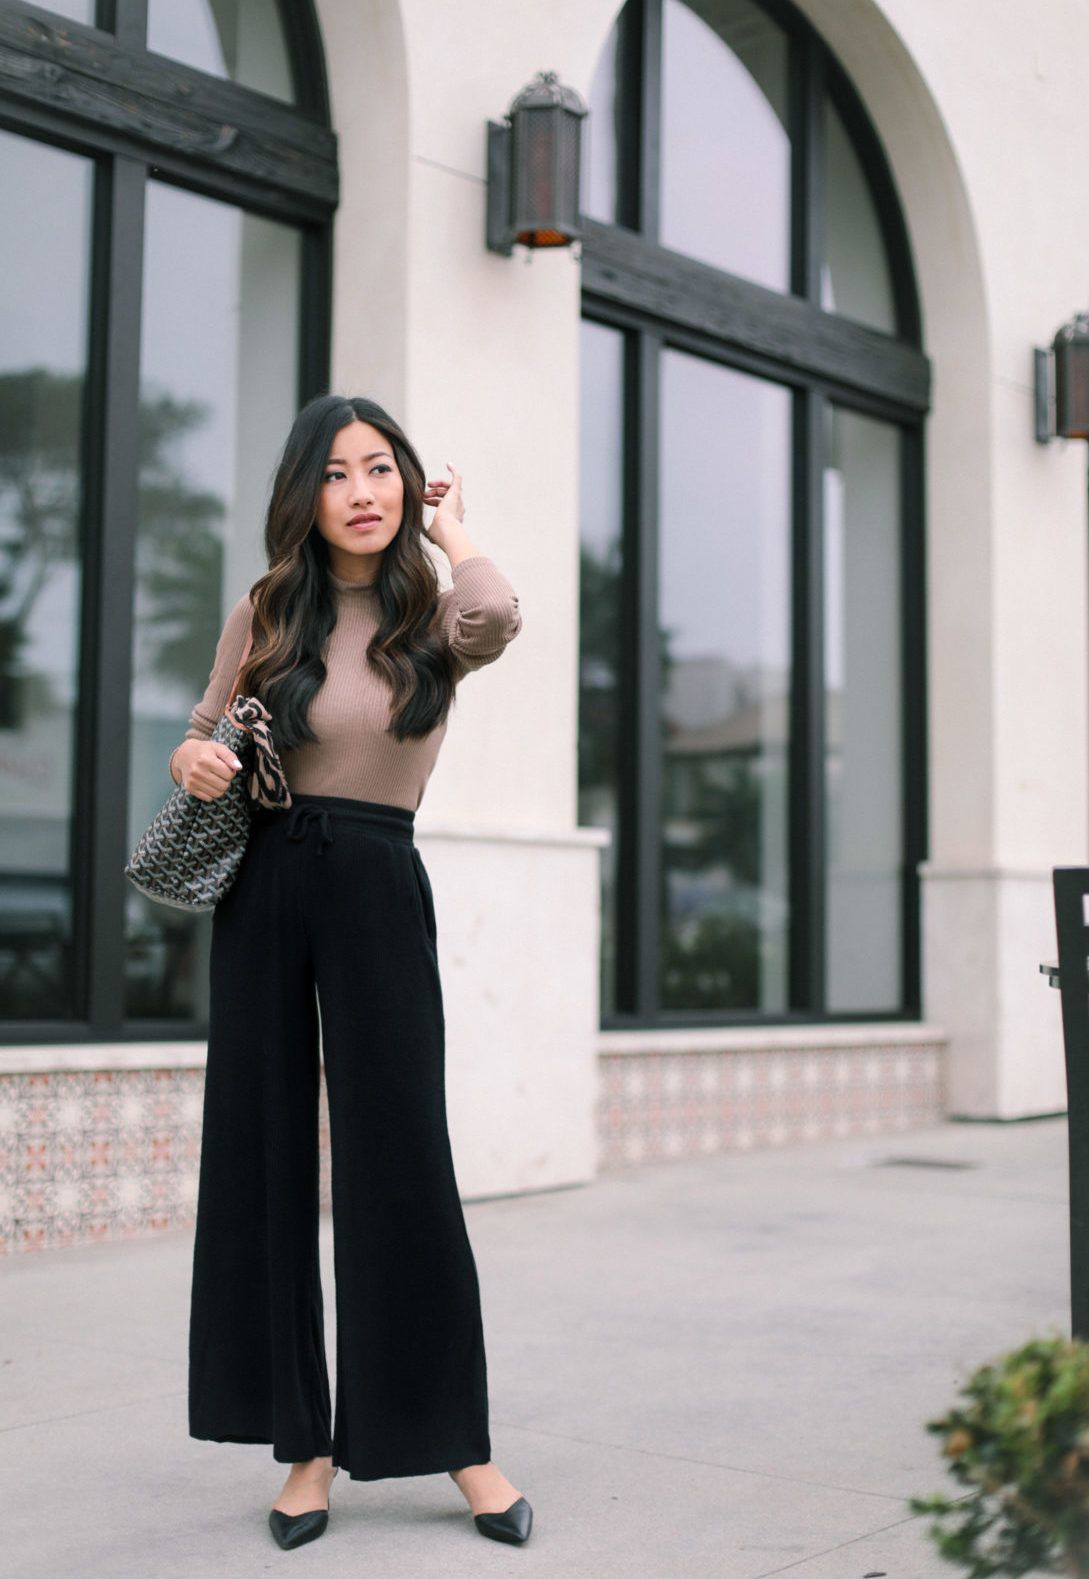 how to style wide leg pants culottes on petites - Extra Petite